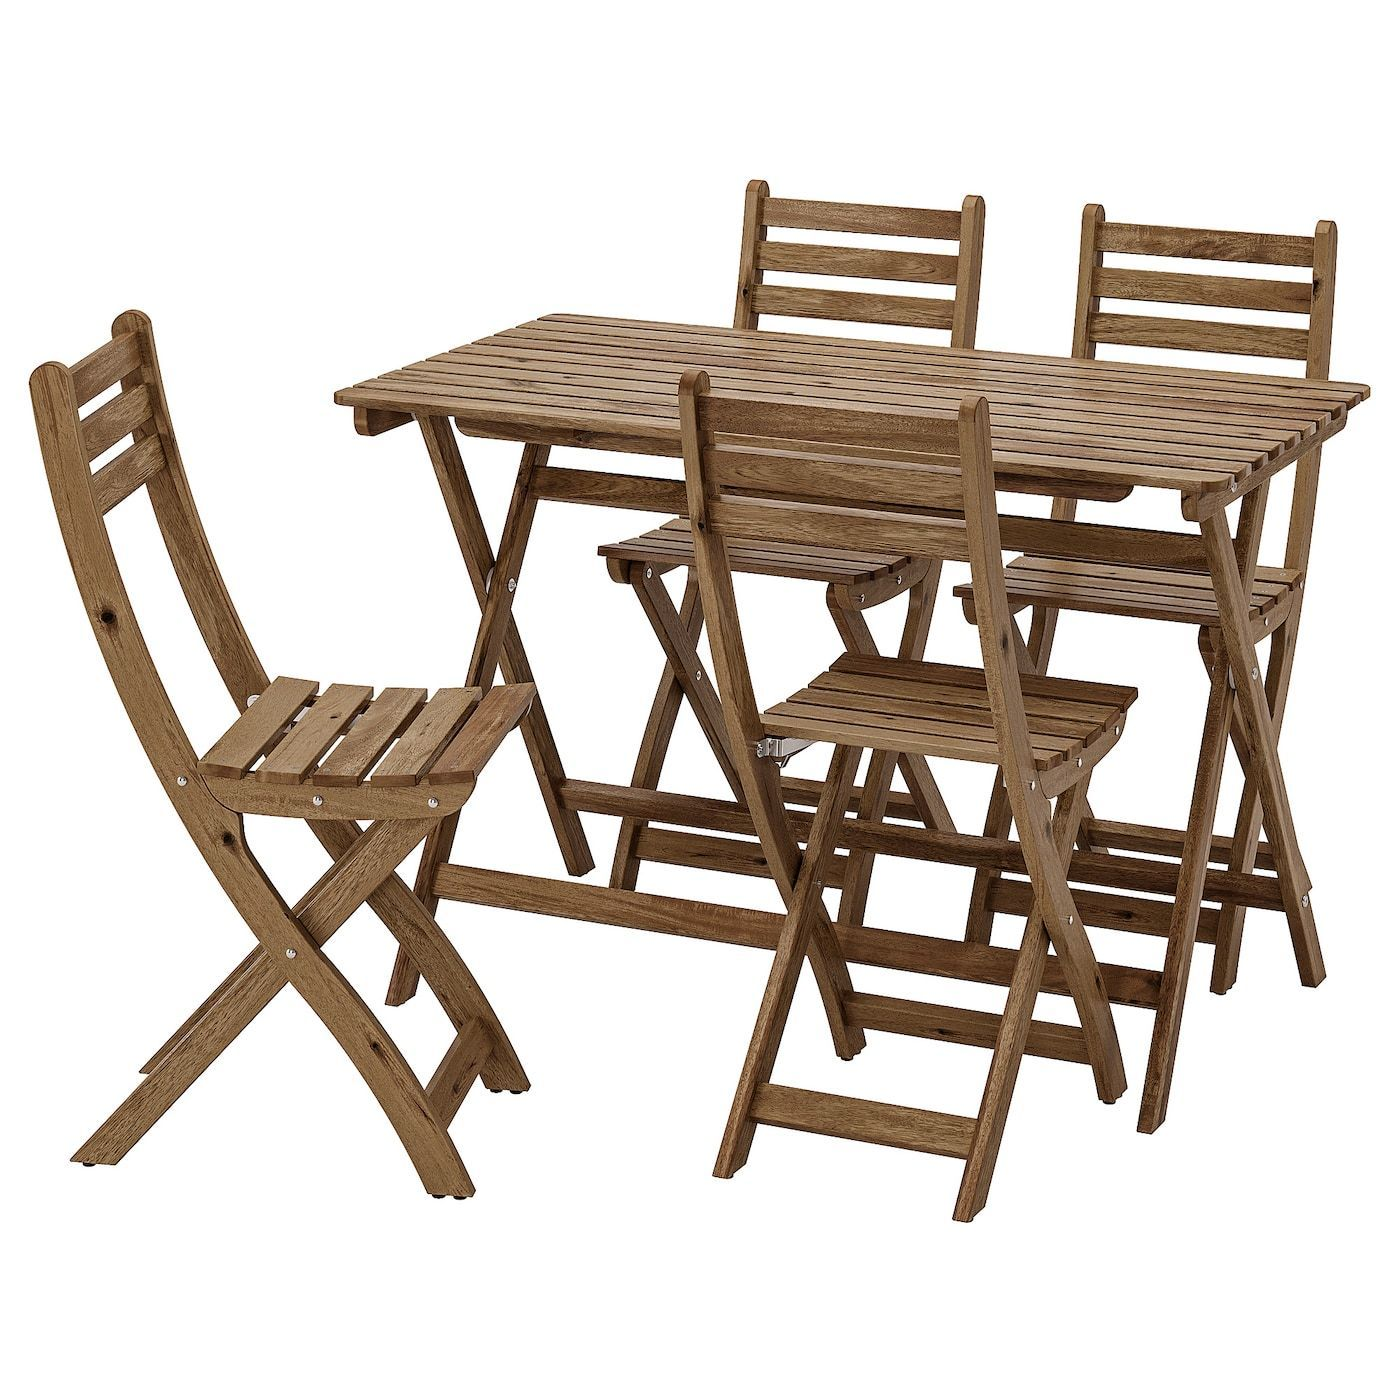 Askholmen Table And 4 Chairs Outdoor Gray Brown Stained Ikea Wooden Outdoor Furniture Outdoor Chairs Small Outdoor Spaces